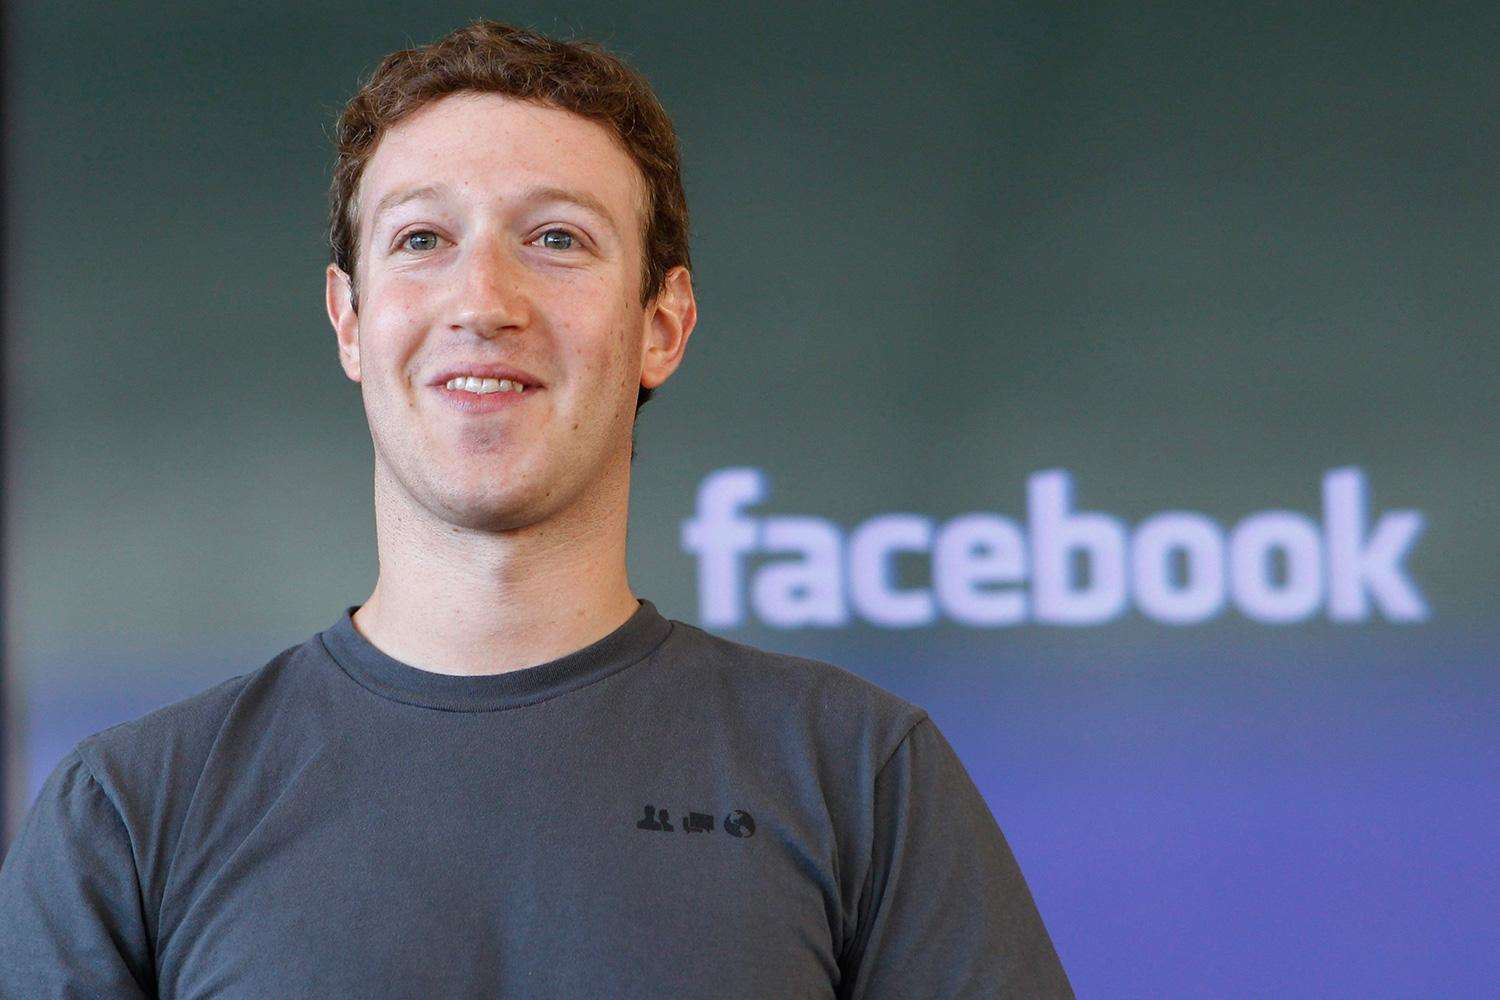 Facebook profit surges 71 pct as mobile ad sales soar